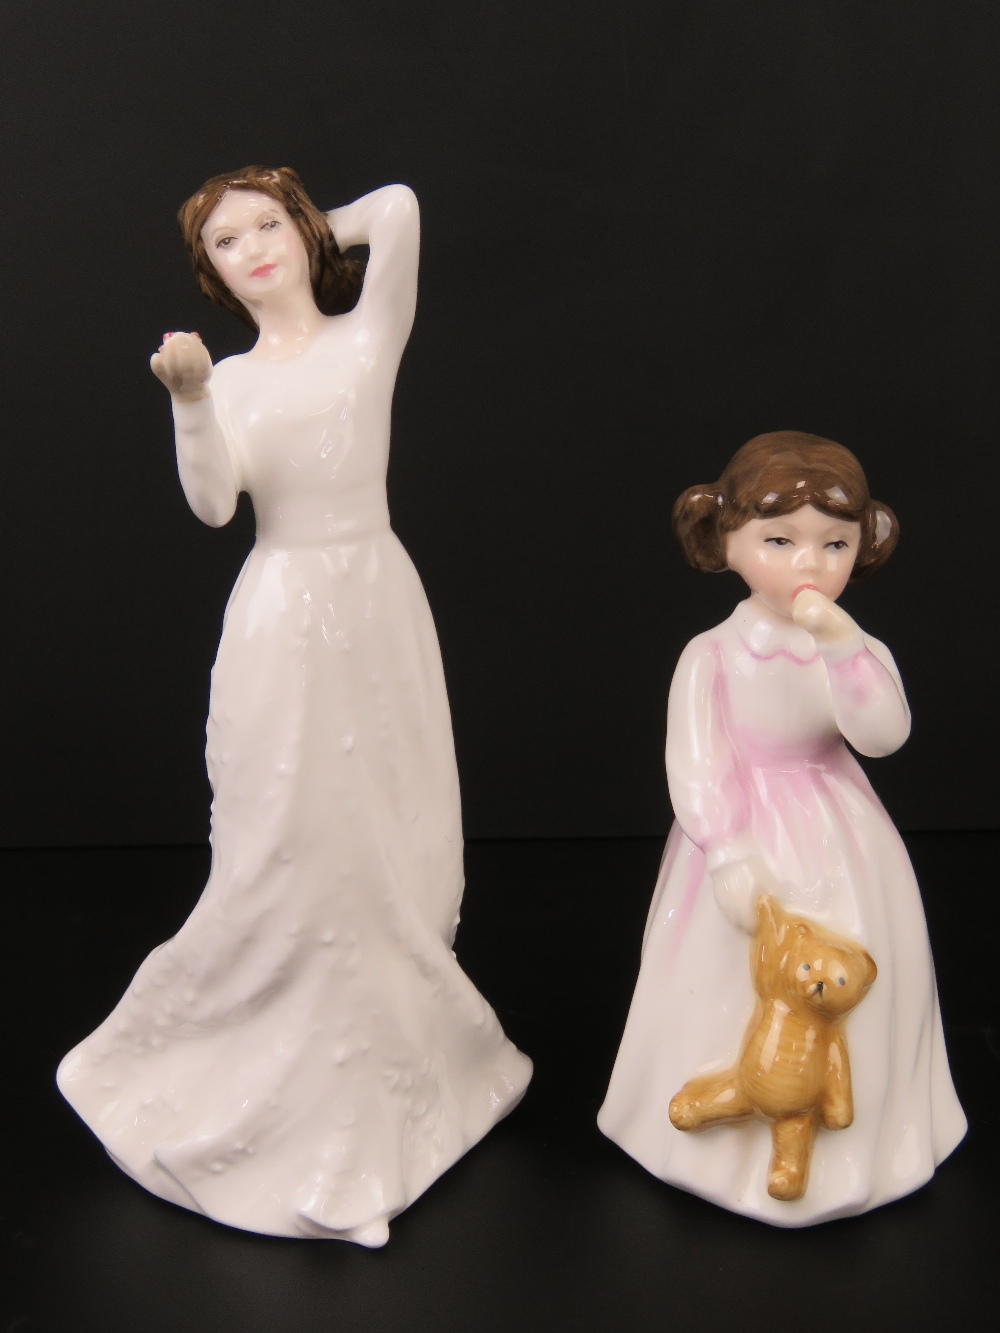 Two Royal Doulton figurines; HN3435 Daddys Girl, 11cm high, and HN3393 With Love, 15cm high.